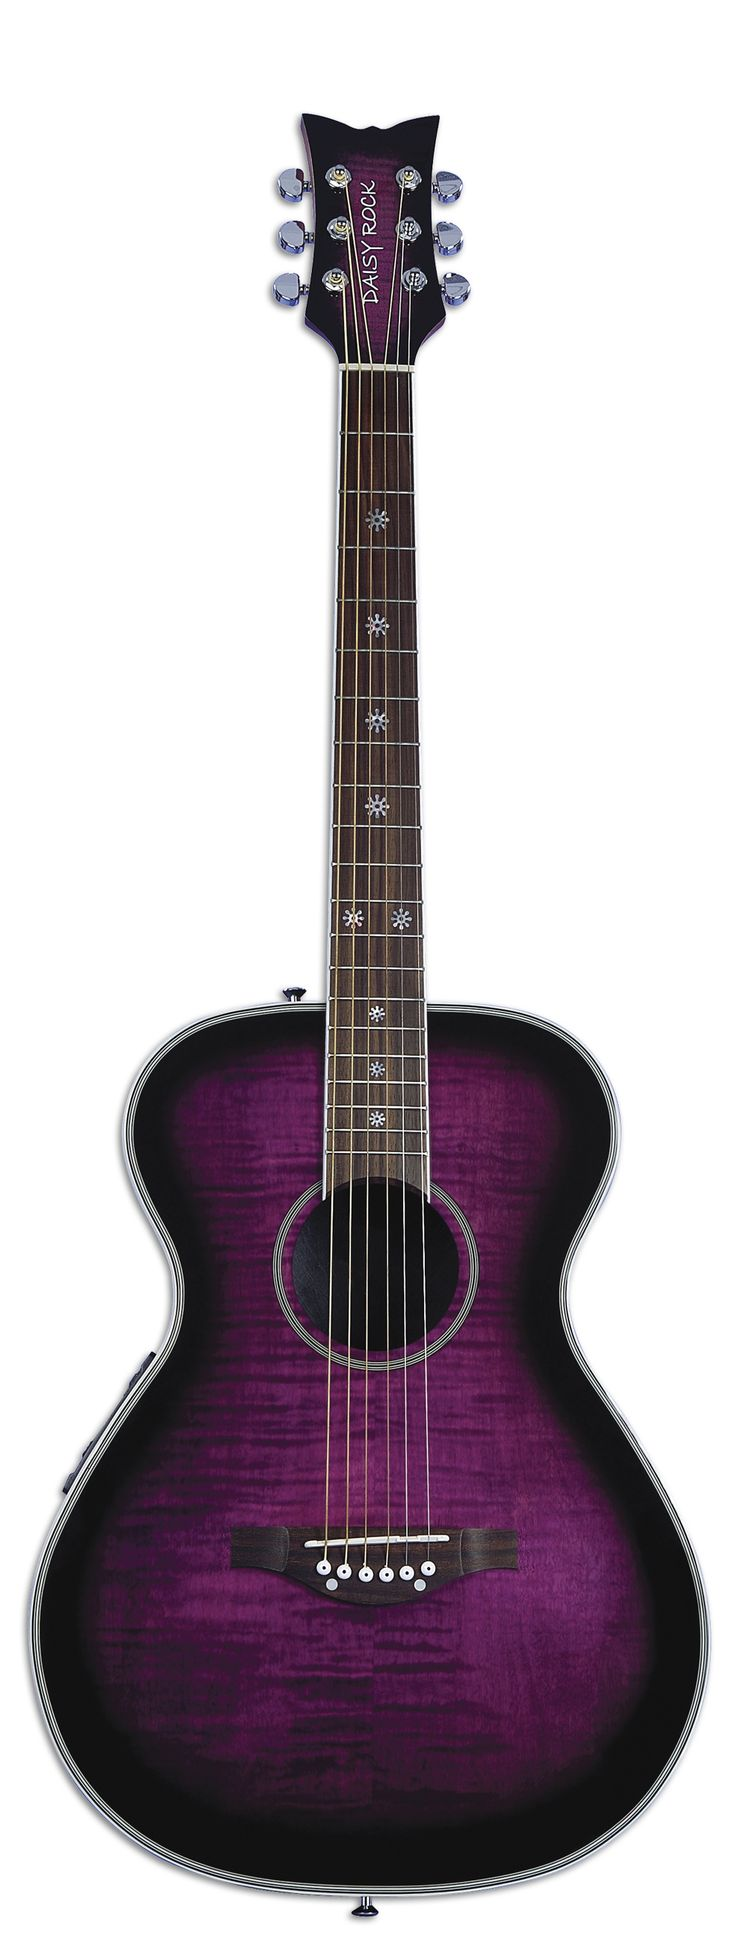 Pixie Acoustic / Electric (Plum Purple Burst) | Daisy Rock Guitars the Girl Guitar Company - I can't play but I would find a place to display a purple guitar!